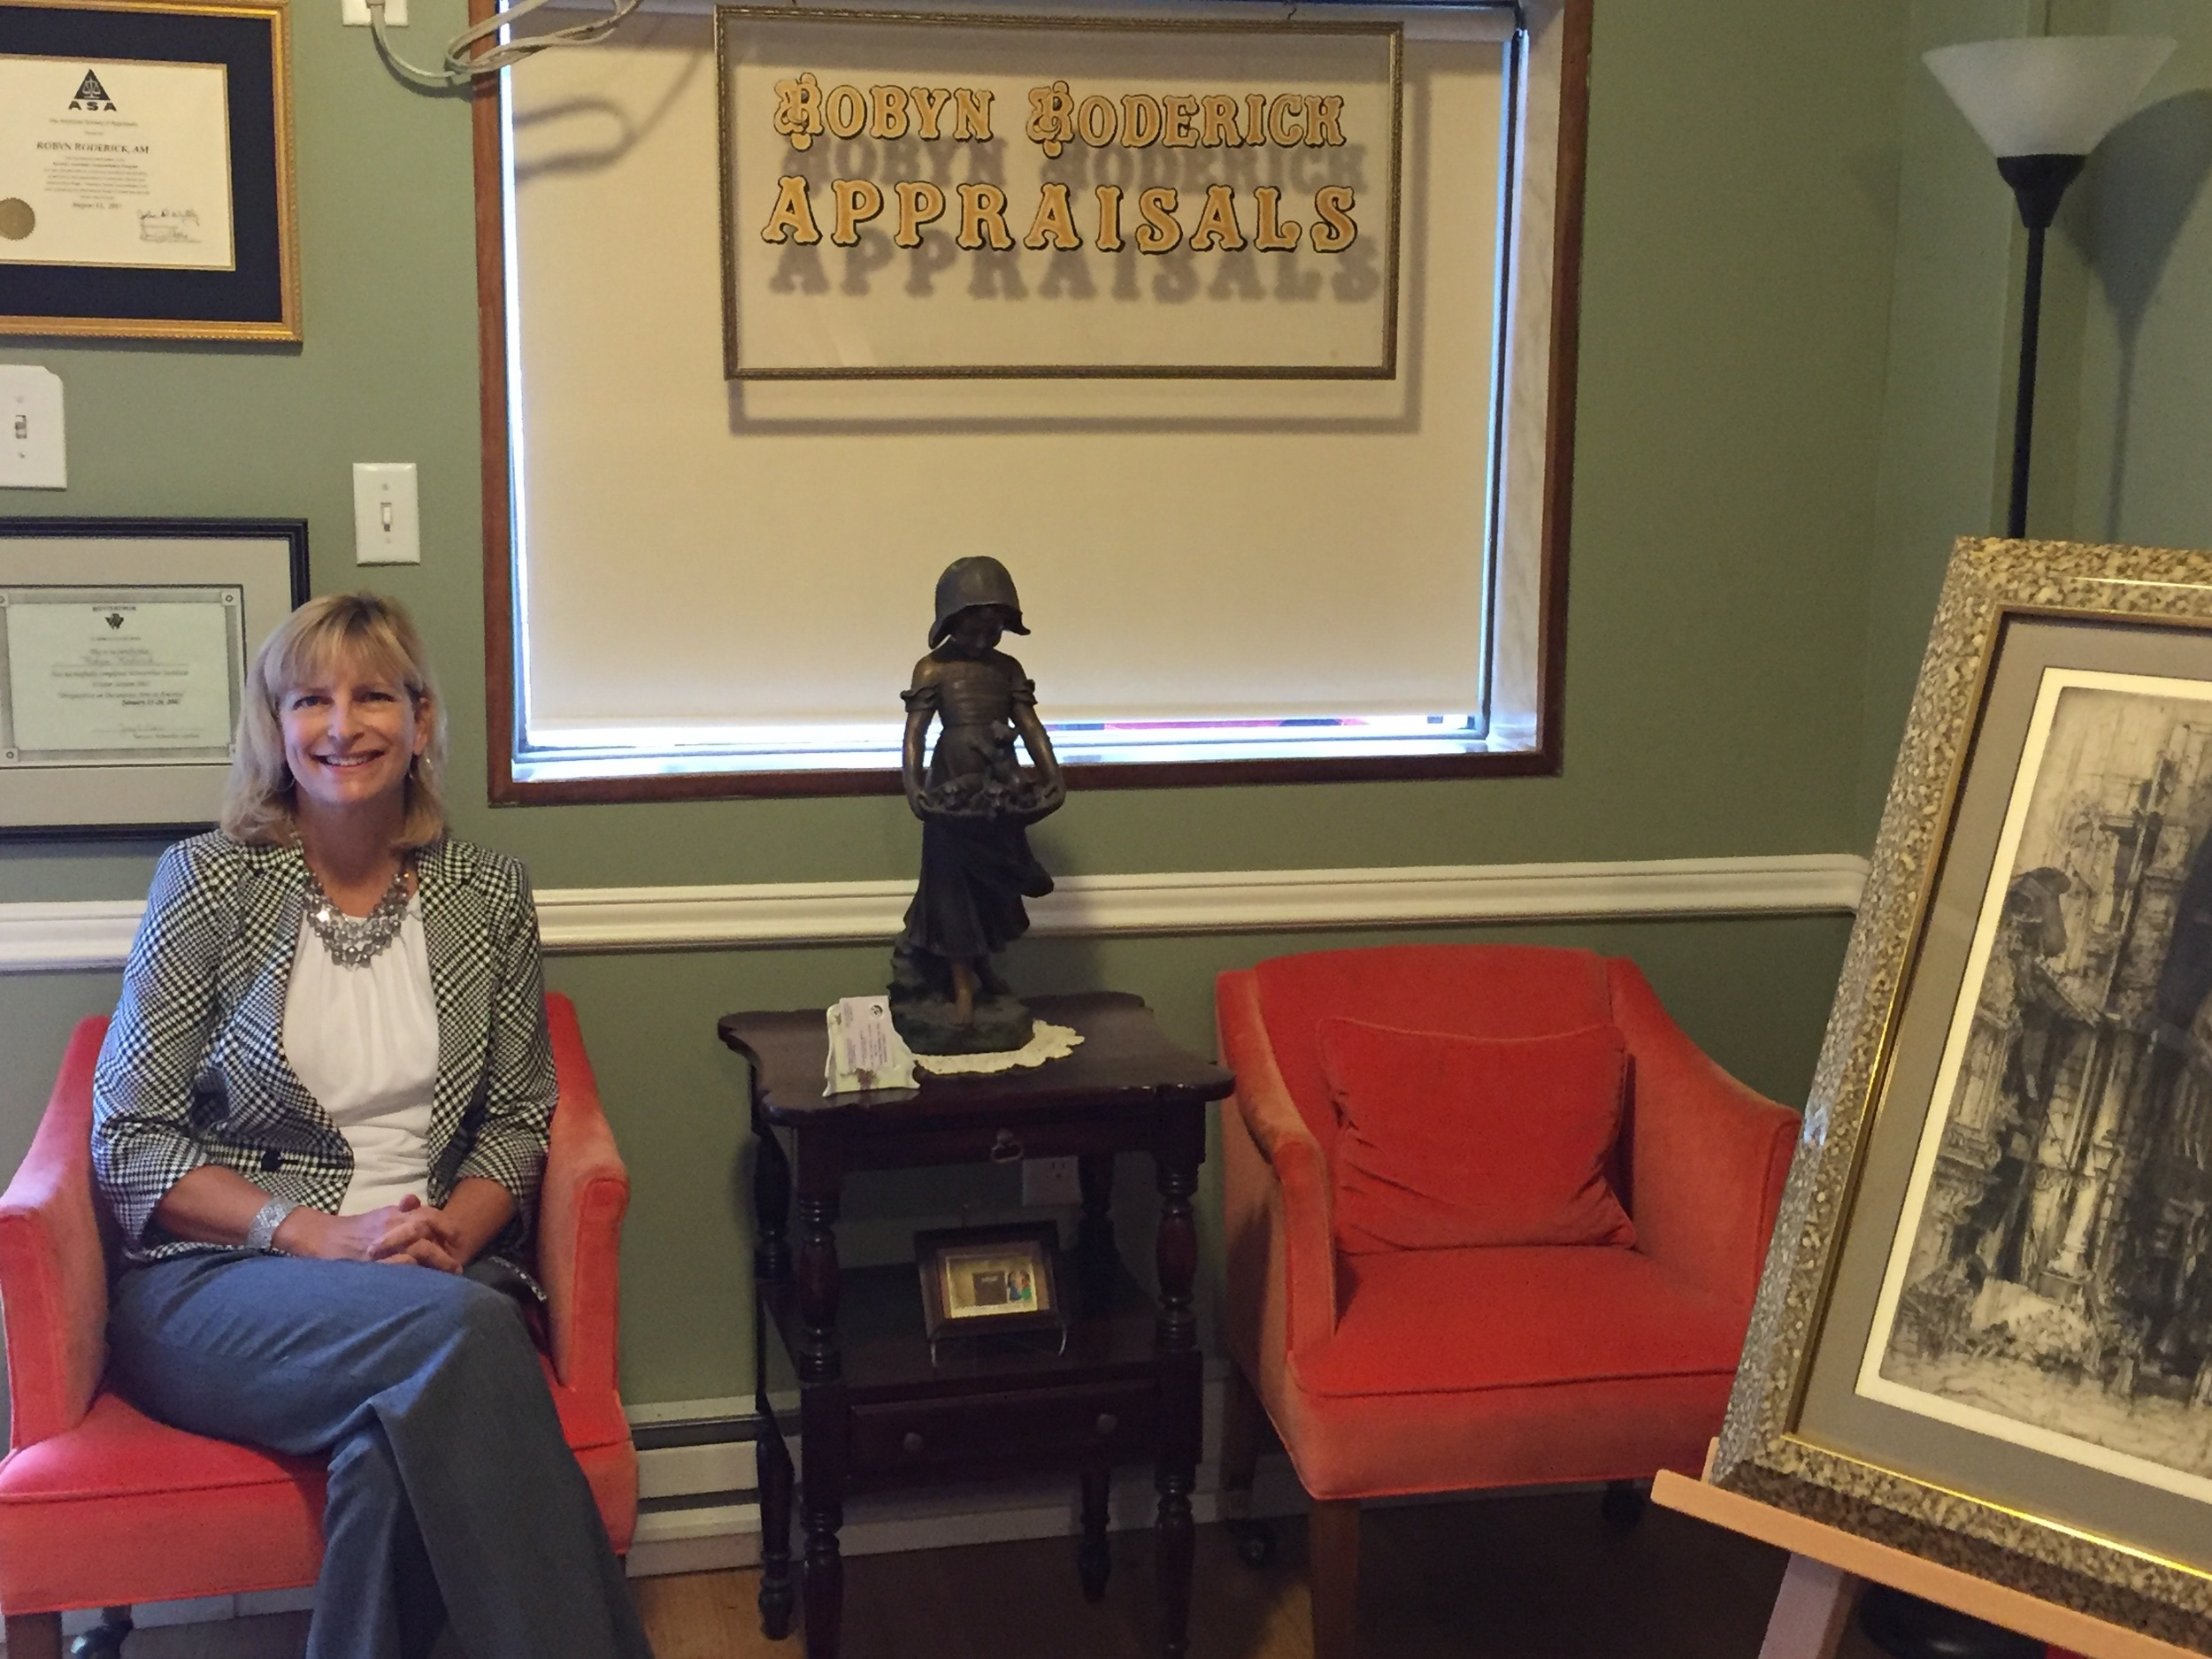 Robyn Roderick in her Swarthmore office